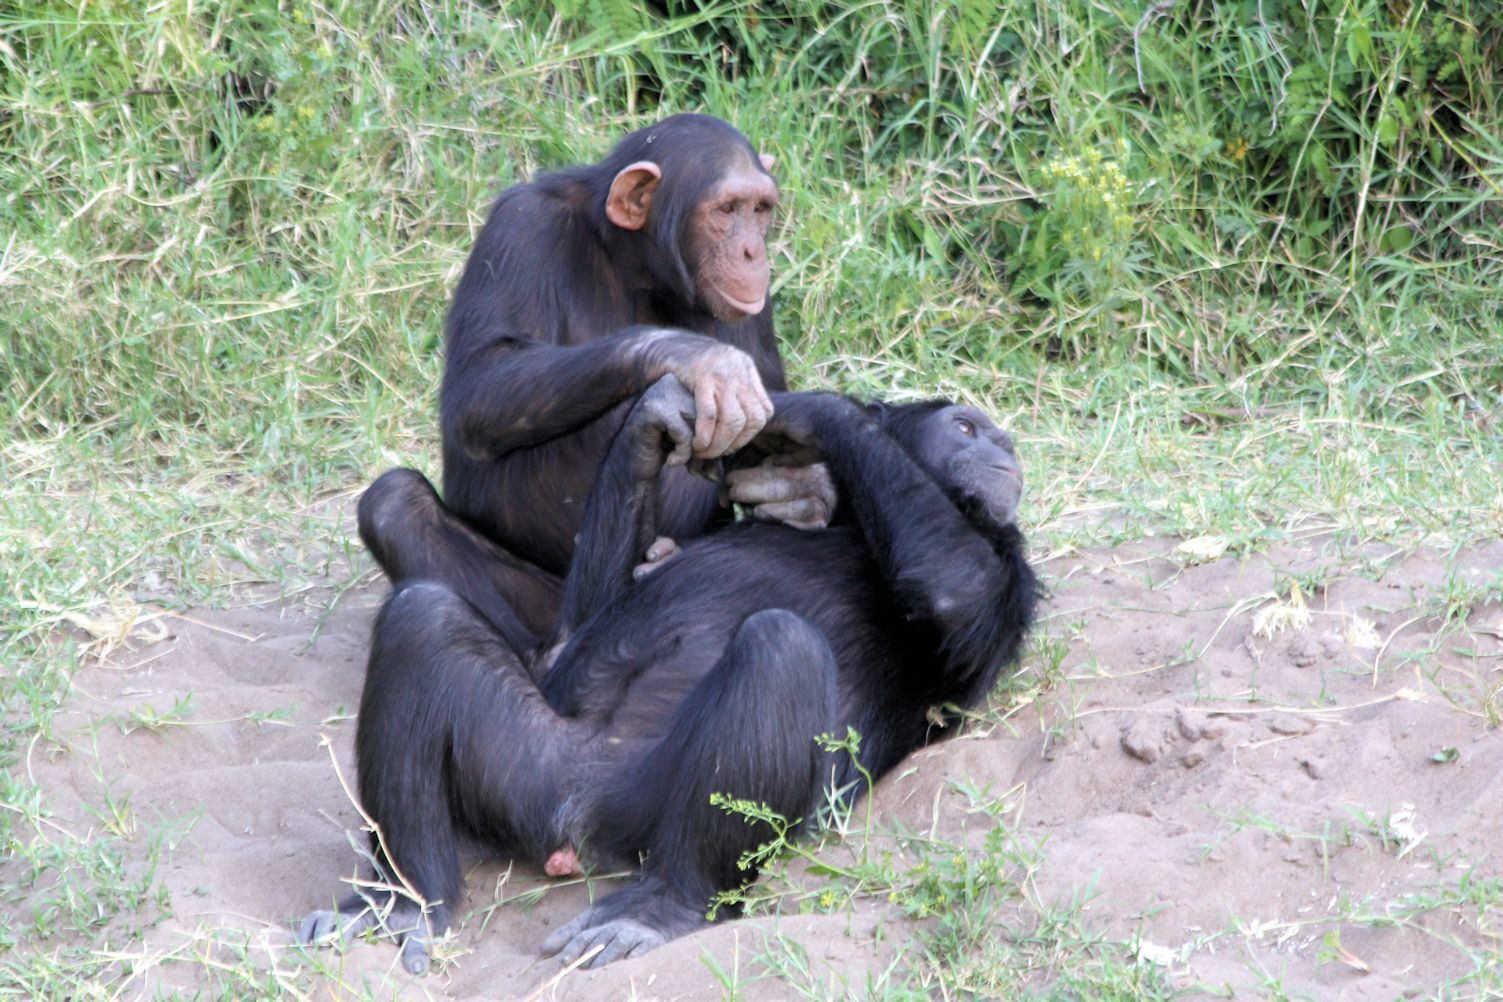 The chimps behave almost exactly as they would in the wild.